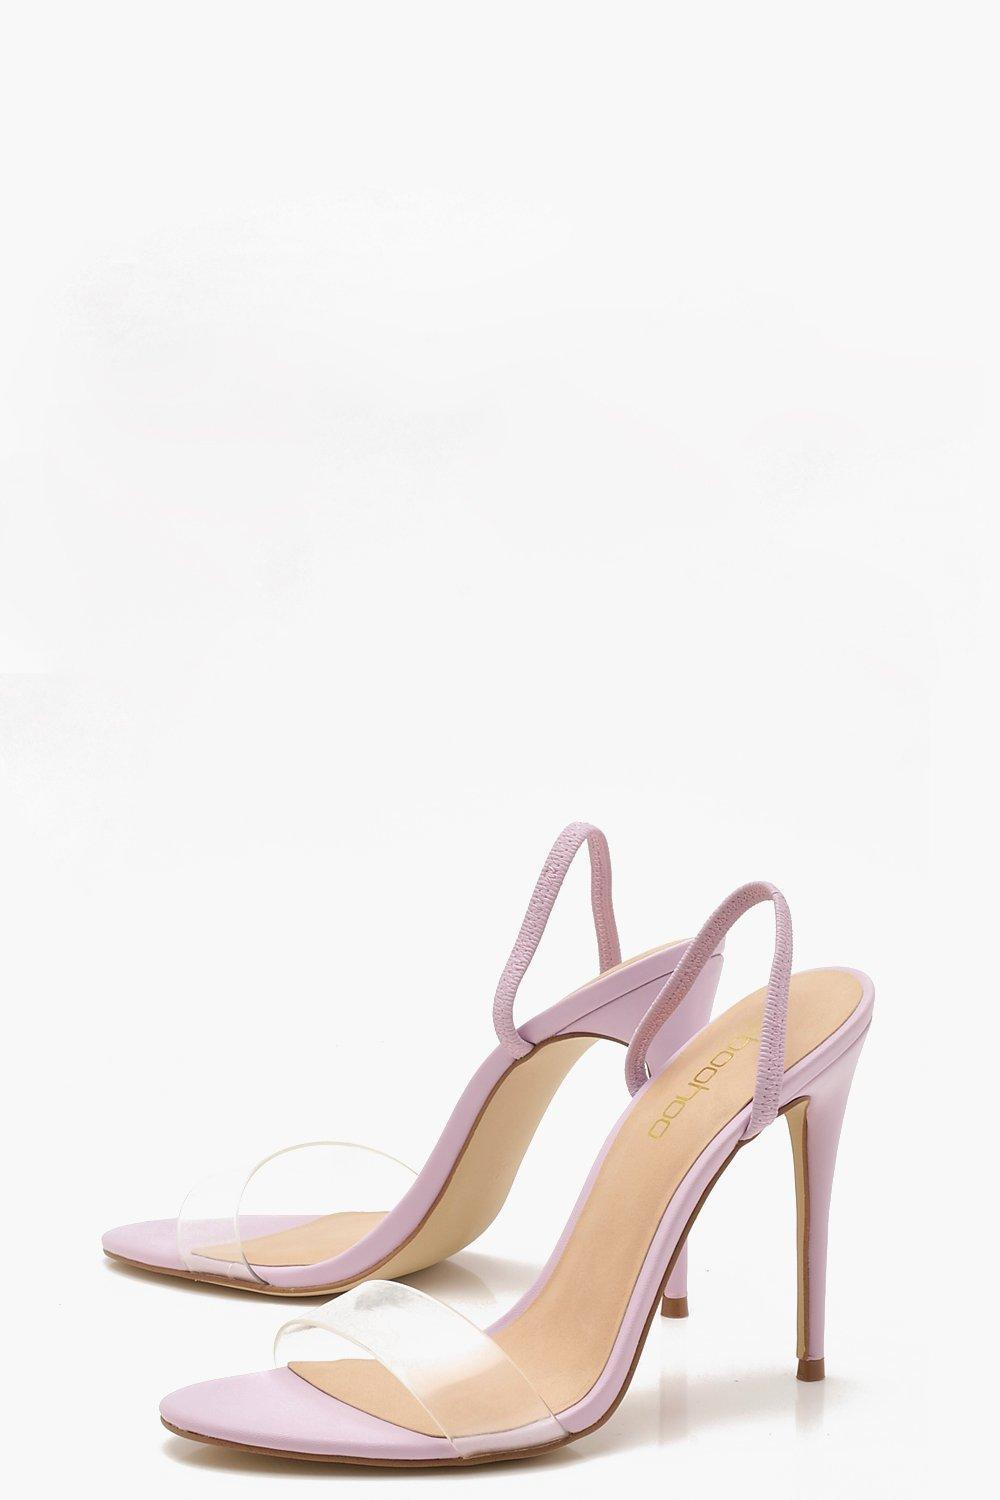 f4bc424db1a Boohoo - Purple Clear Strap Sling Back Heel Sandals - Lyst. View fullscreen